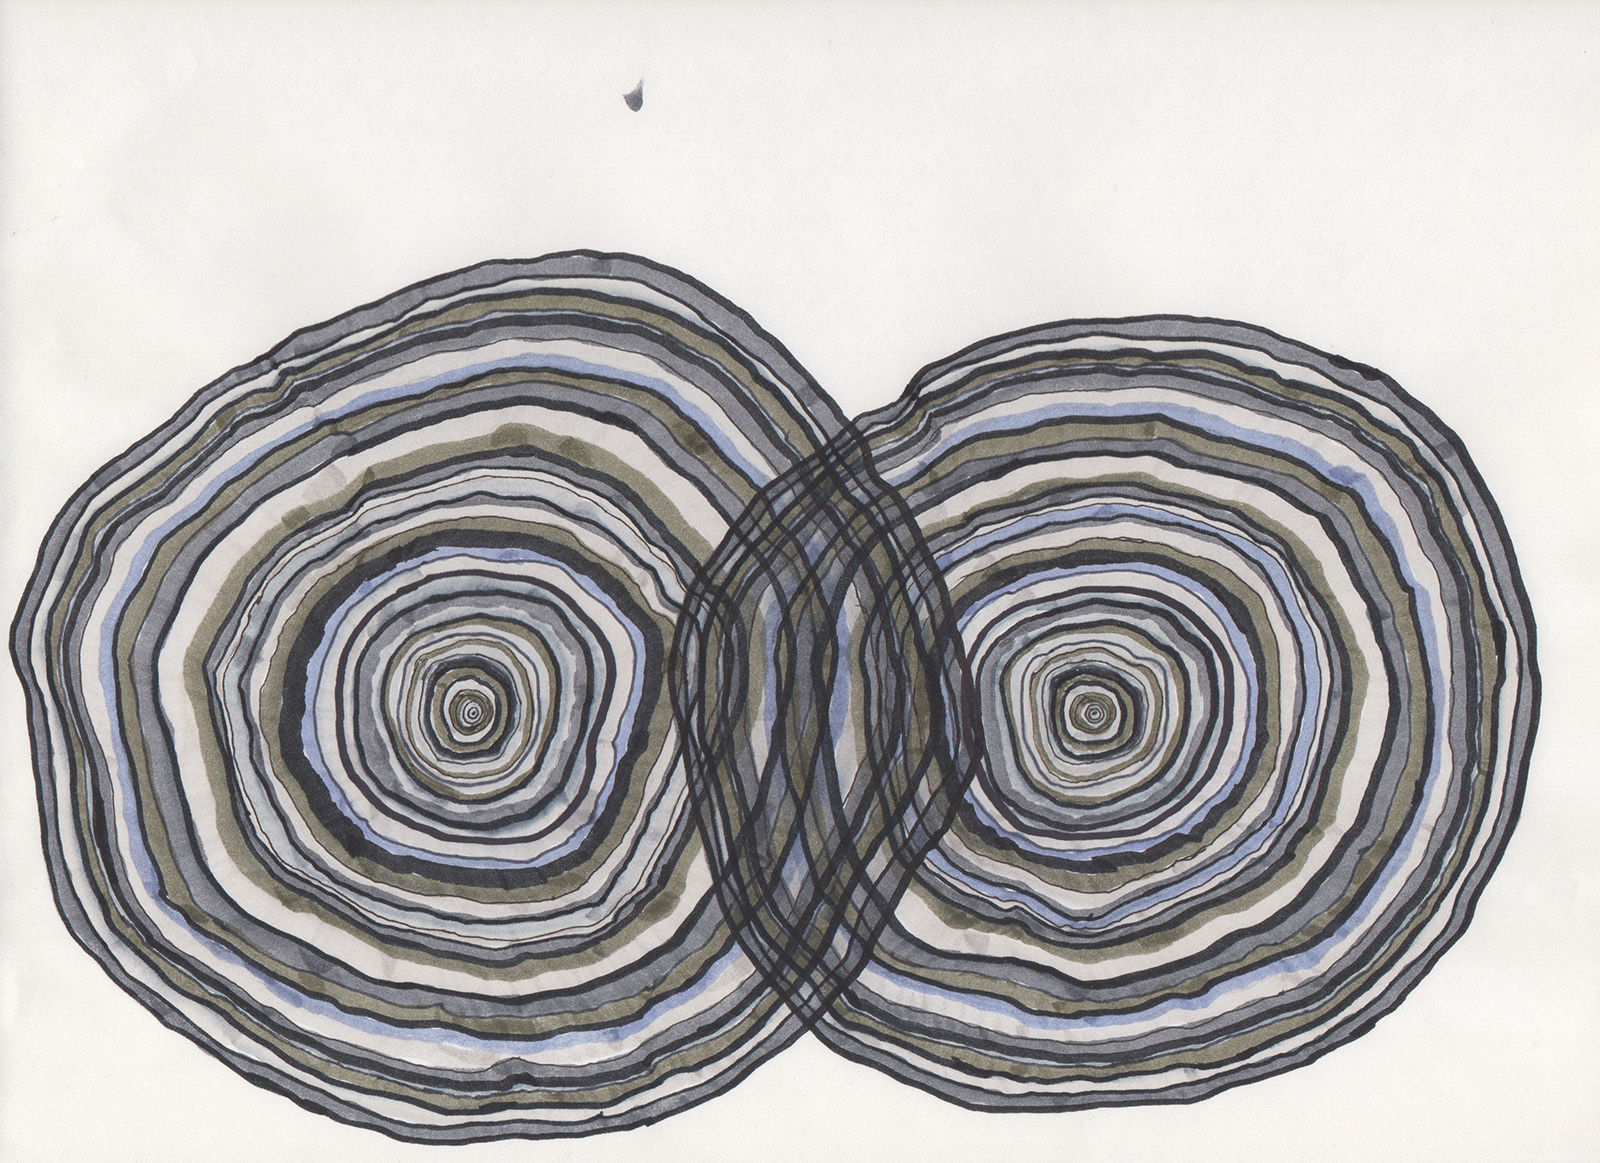 """Double 63 Years,"" 2015, marker and pen on paper, 9in. x 11 7/8in."